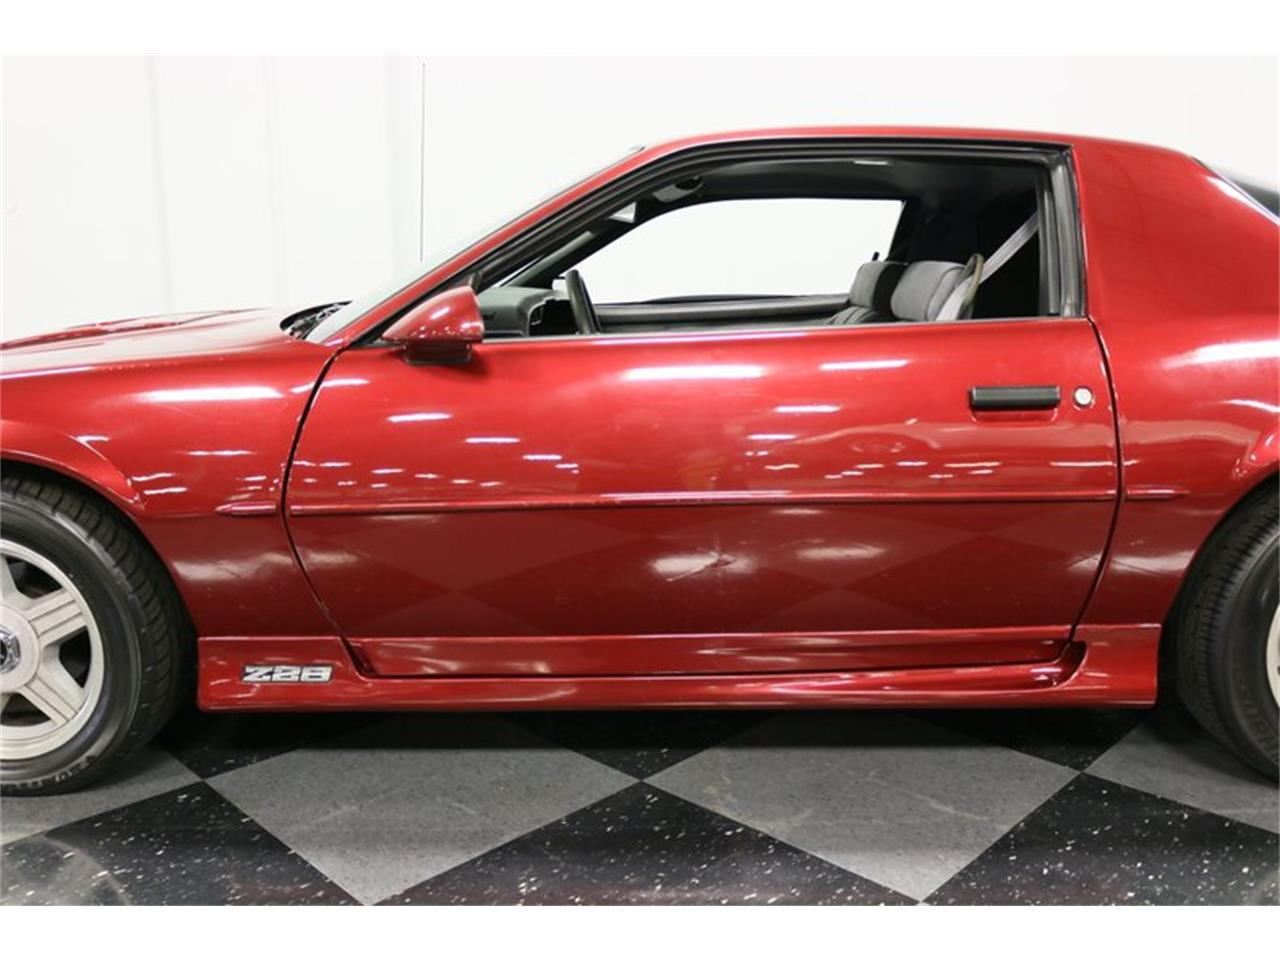 Large Picture of '91 Camaro located in Texas Offered by Streetside Classics - Dallas / Fort Worth - PBLJ